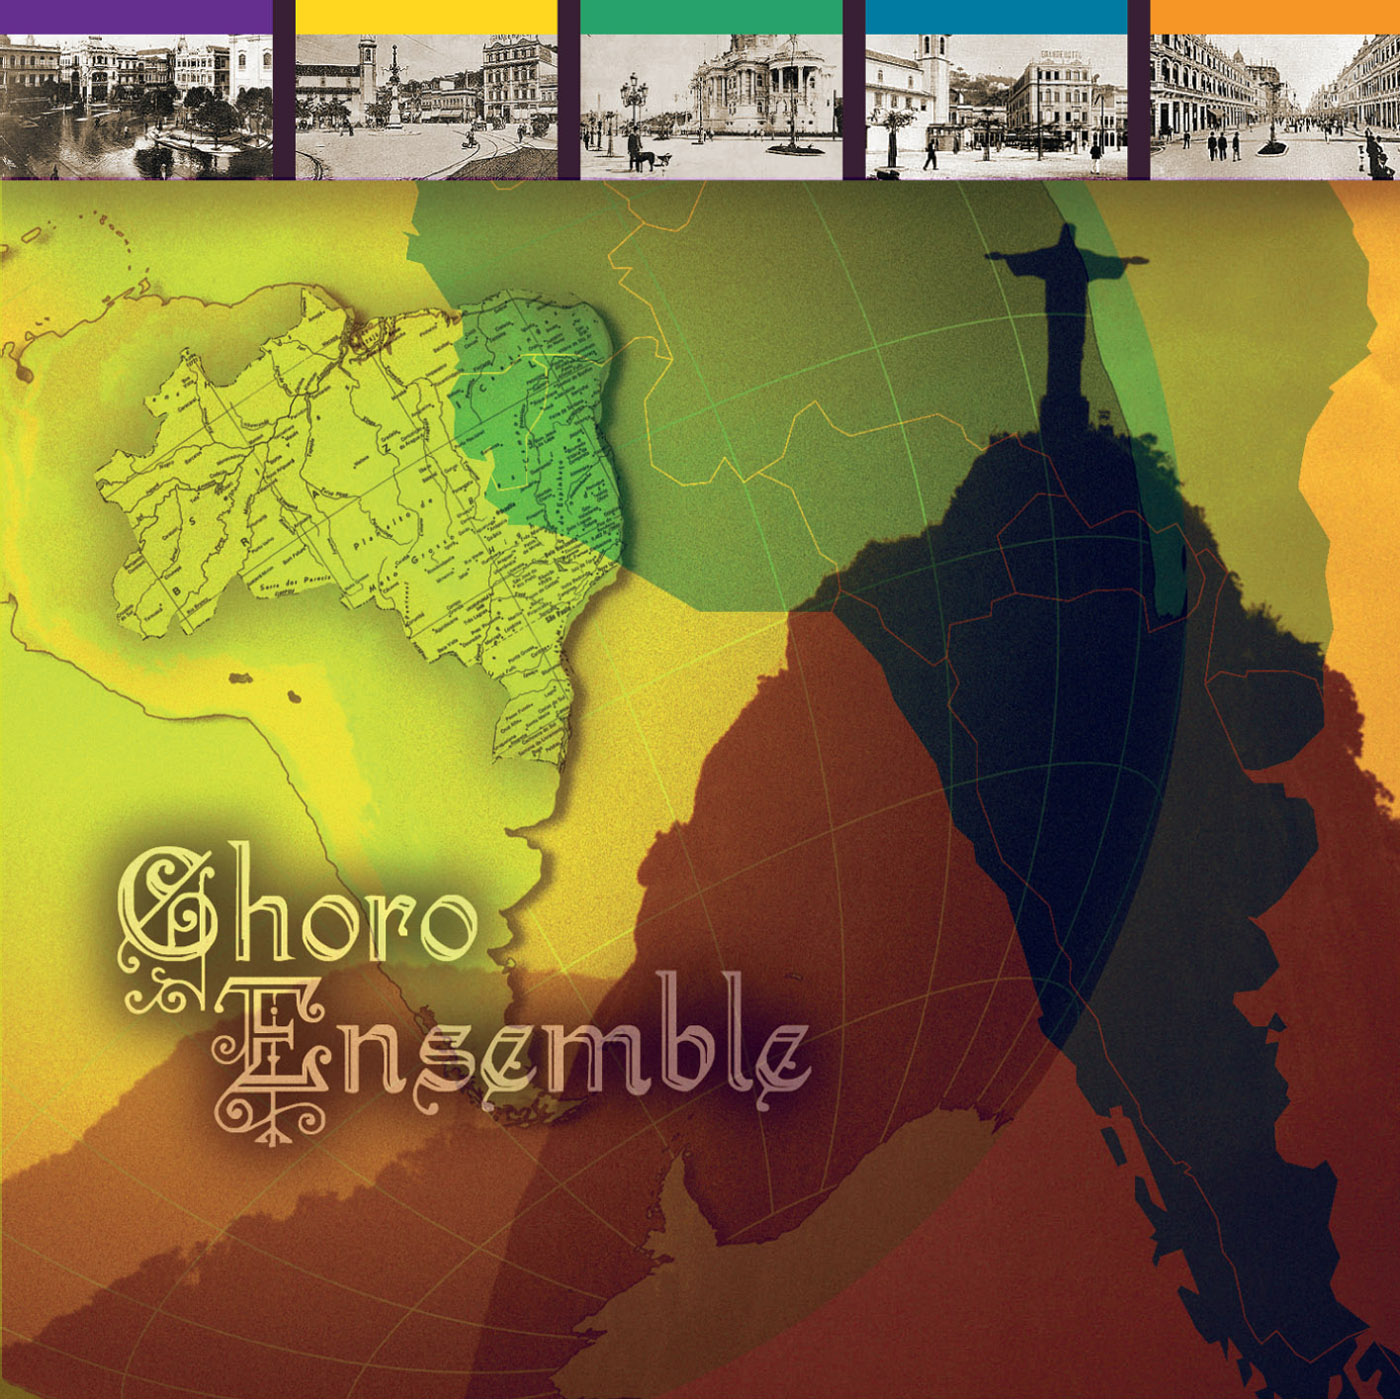 Choro Ensemble by Choro Ensemble cover